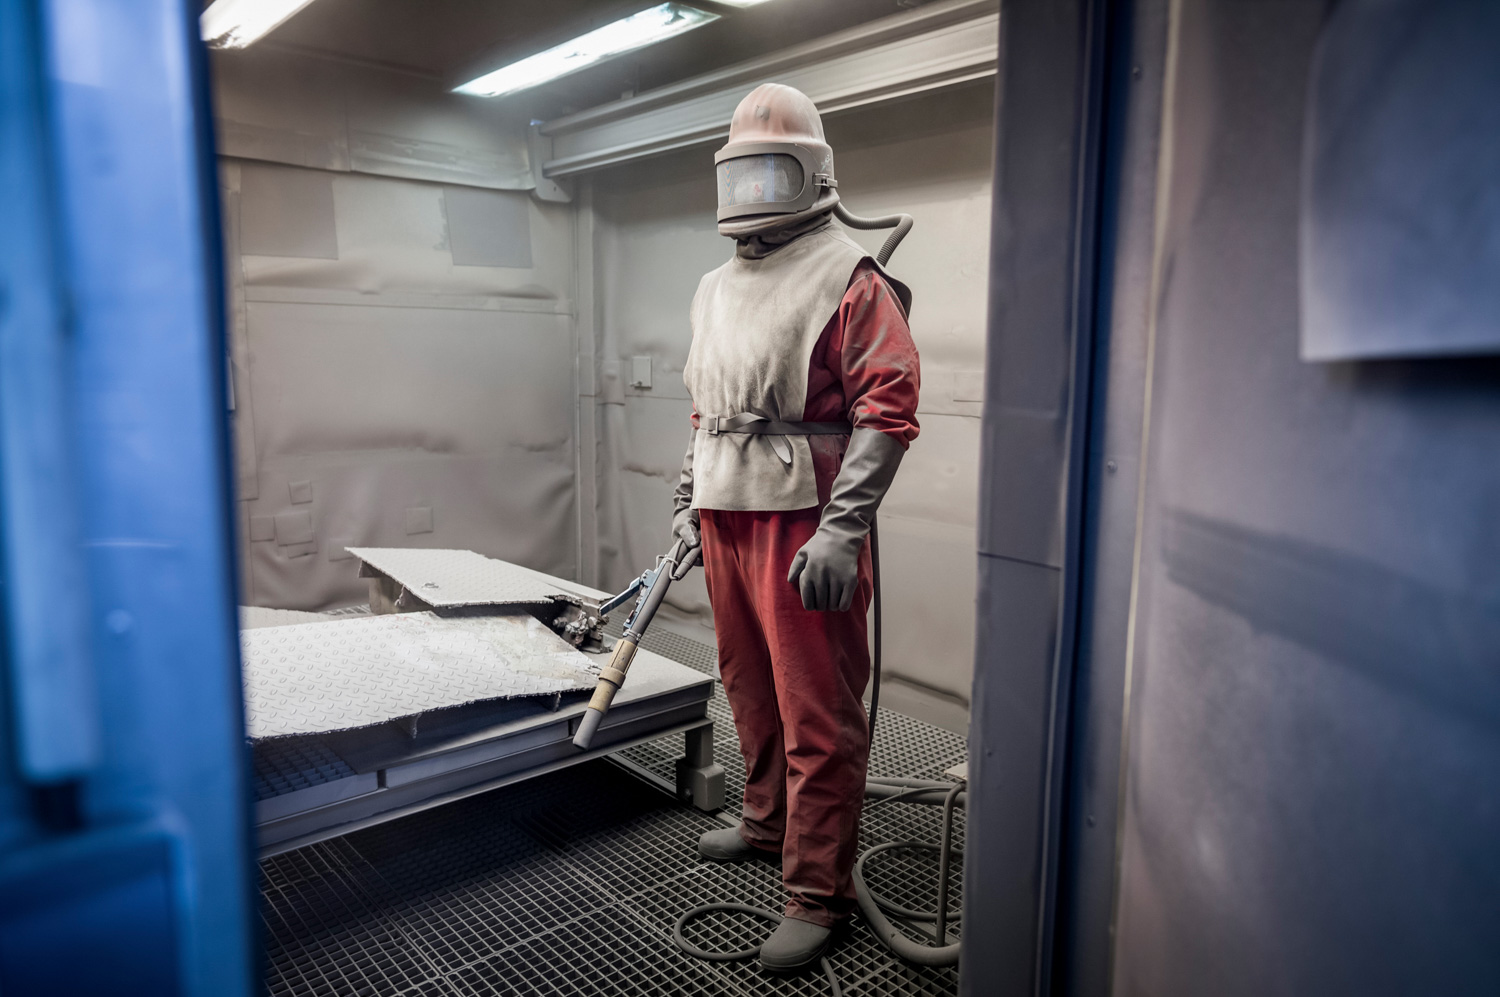 Workers have been taking apart this Soviet-era nuclear power plant, near Greifswald in eastern Germany, since 1995, cleaning radioactive surfaces with steel grit so the metal can be recycled. Germany plans to shut all its reactors by 2022.